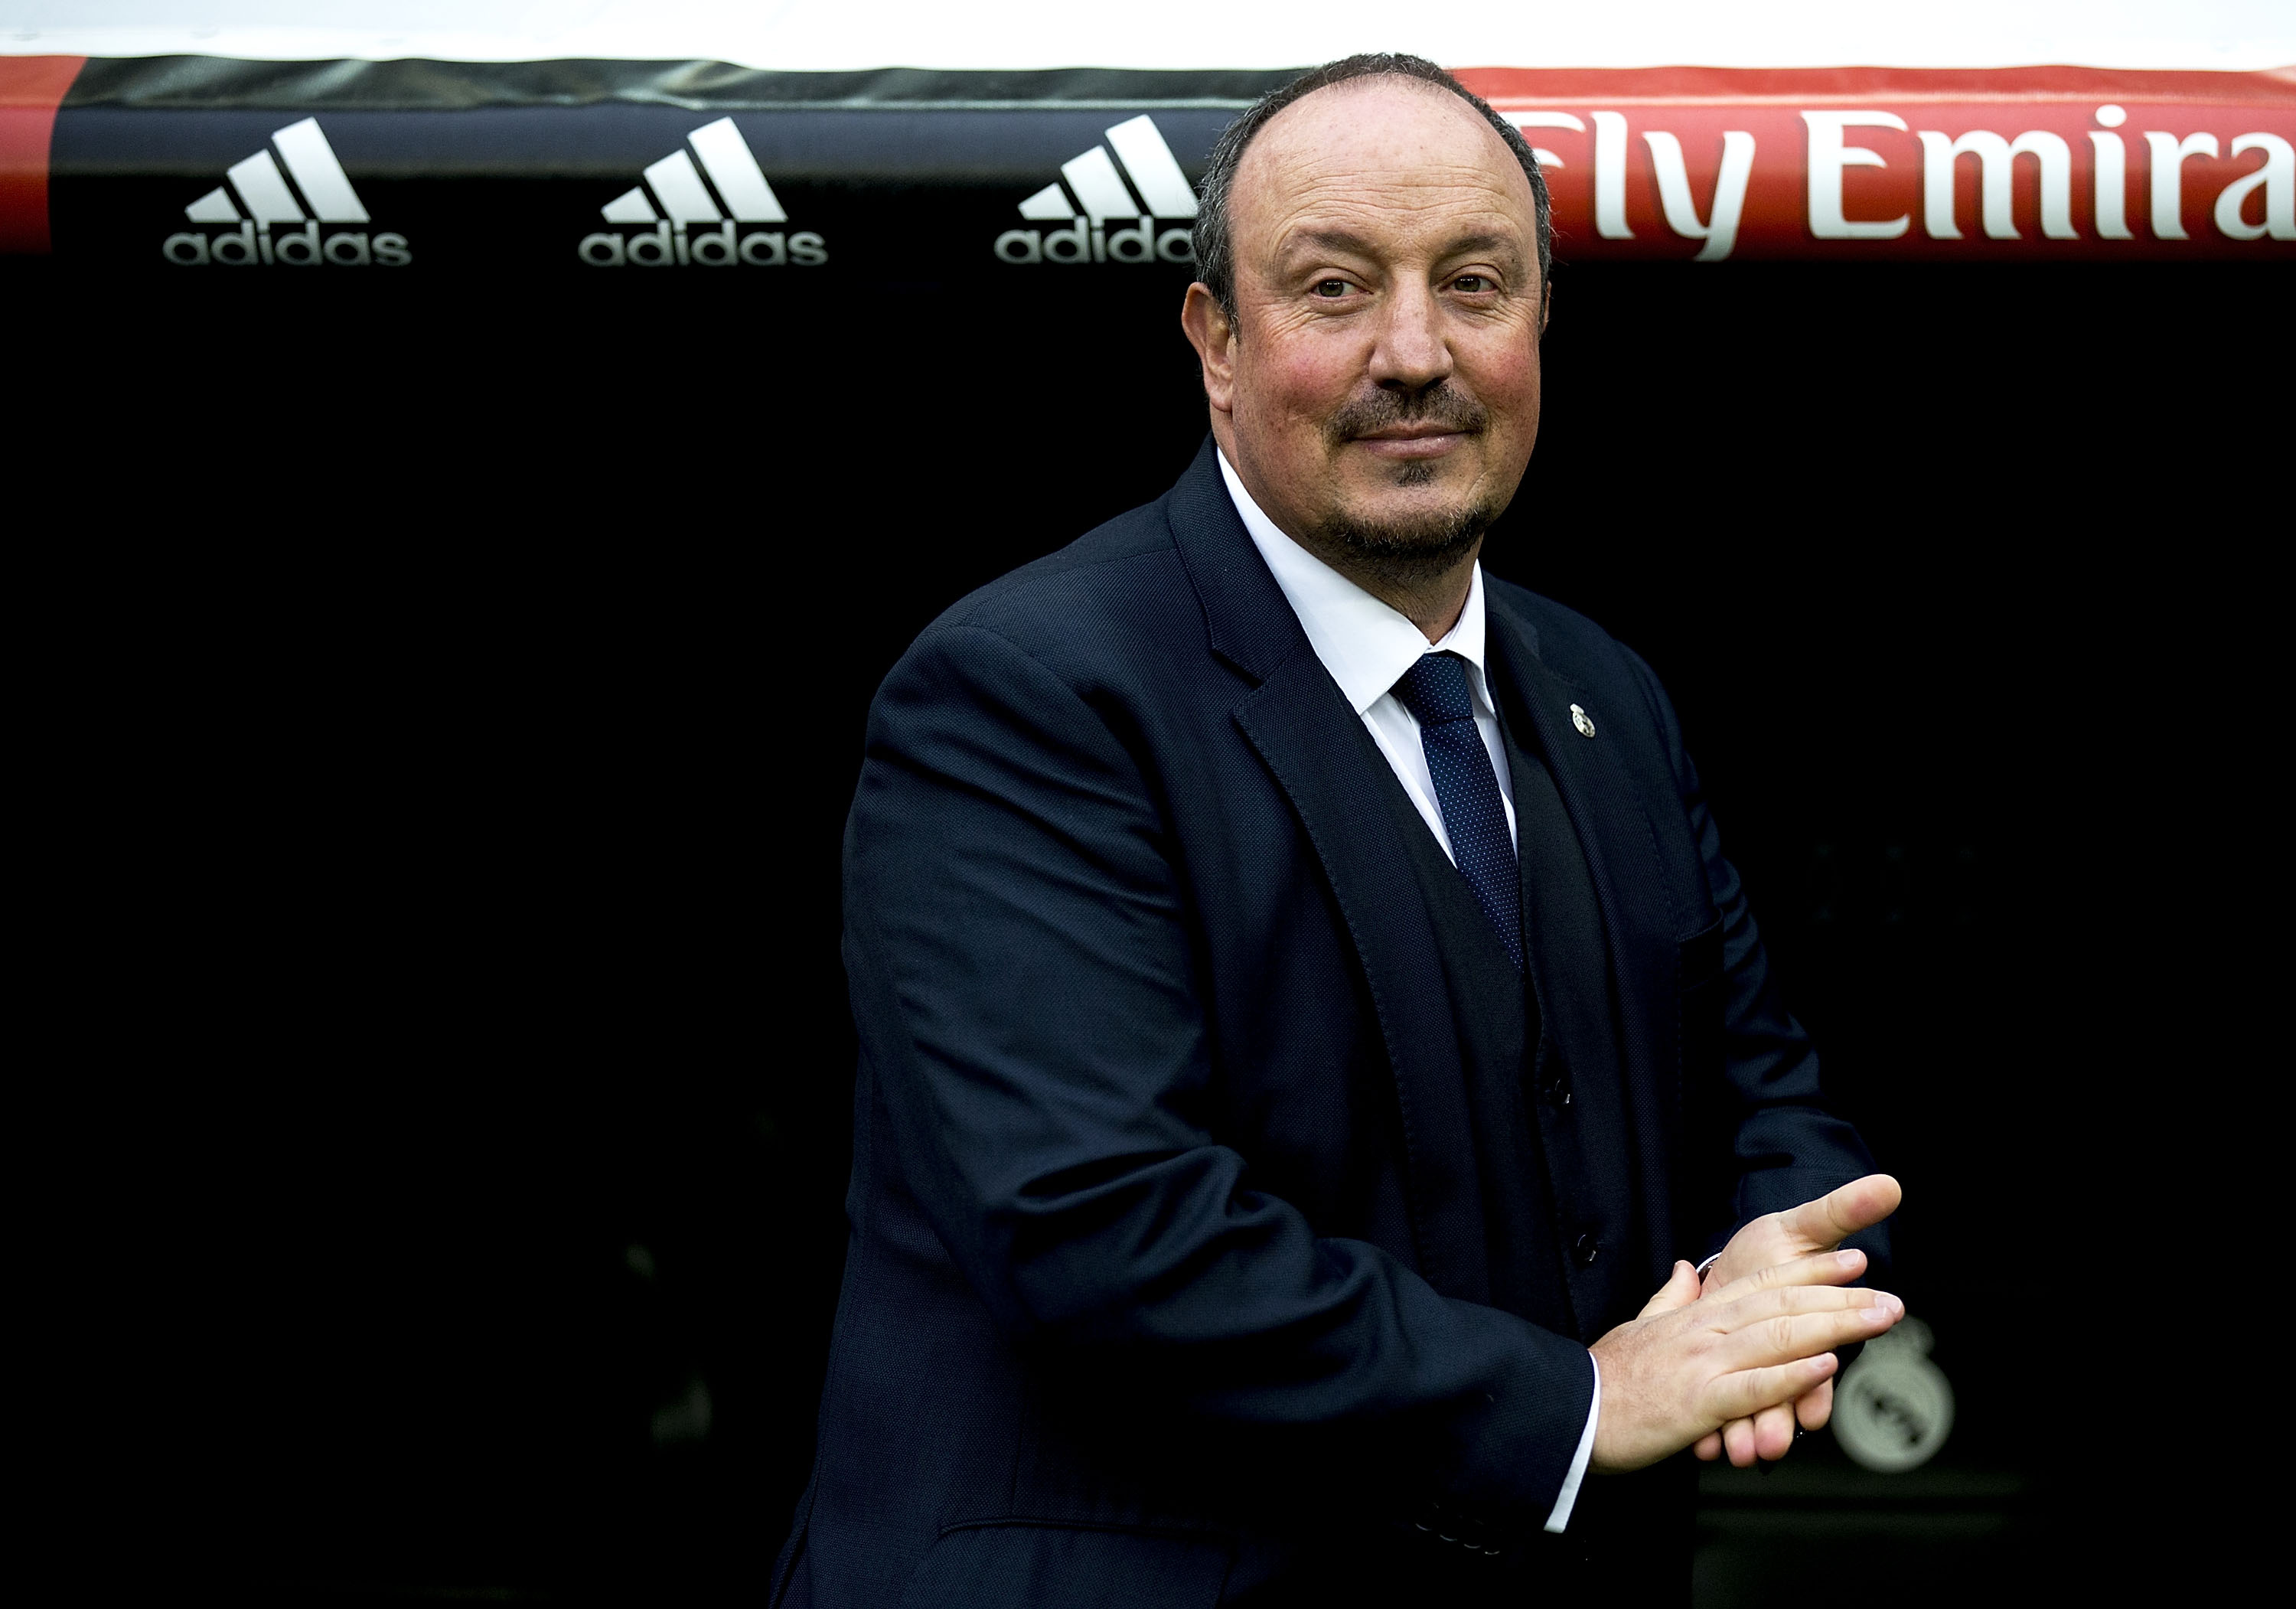 Rafael Benitez will consider Newcastle United job offer if assured of club's ambition